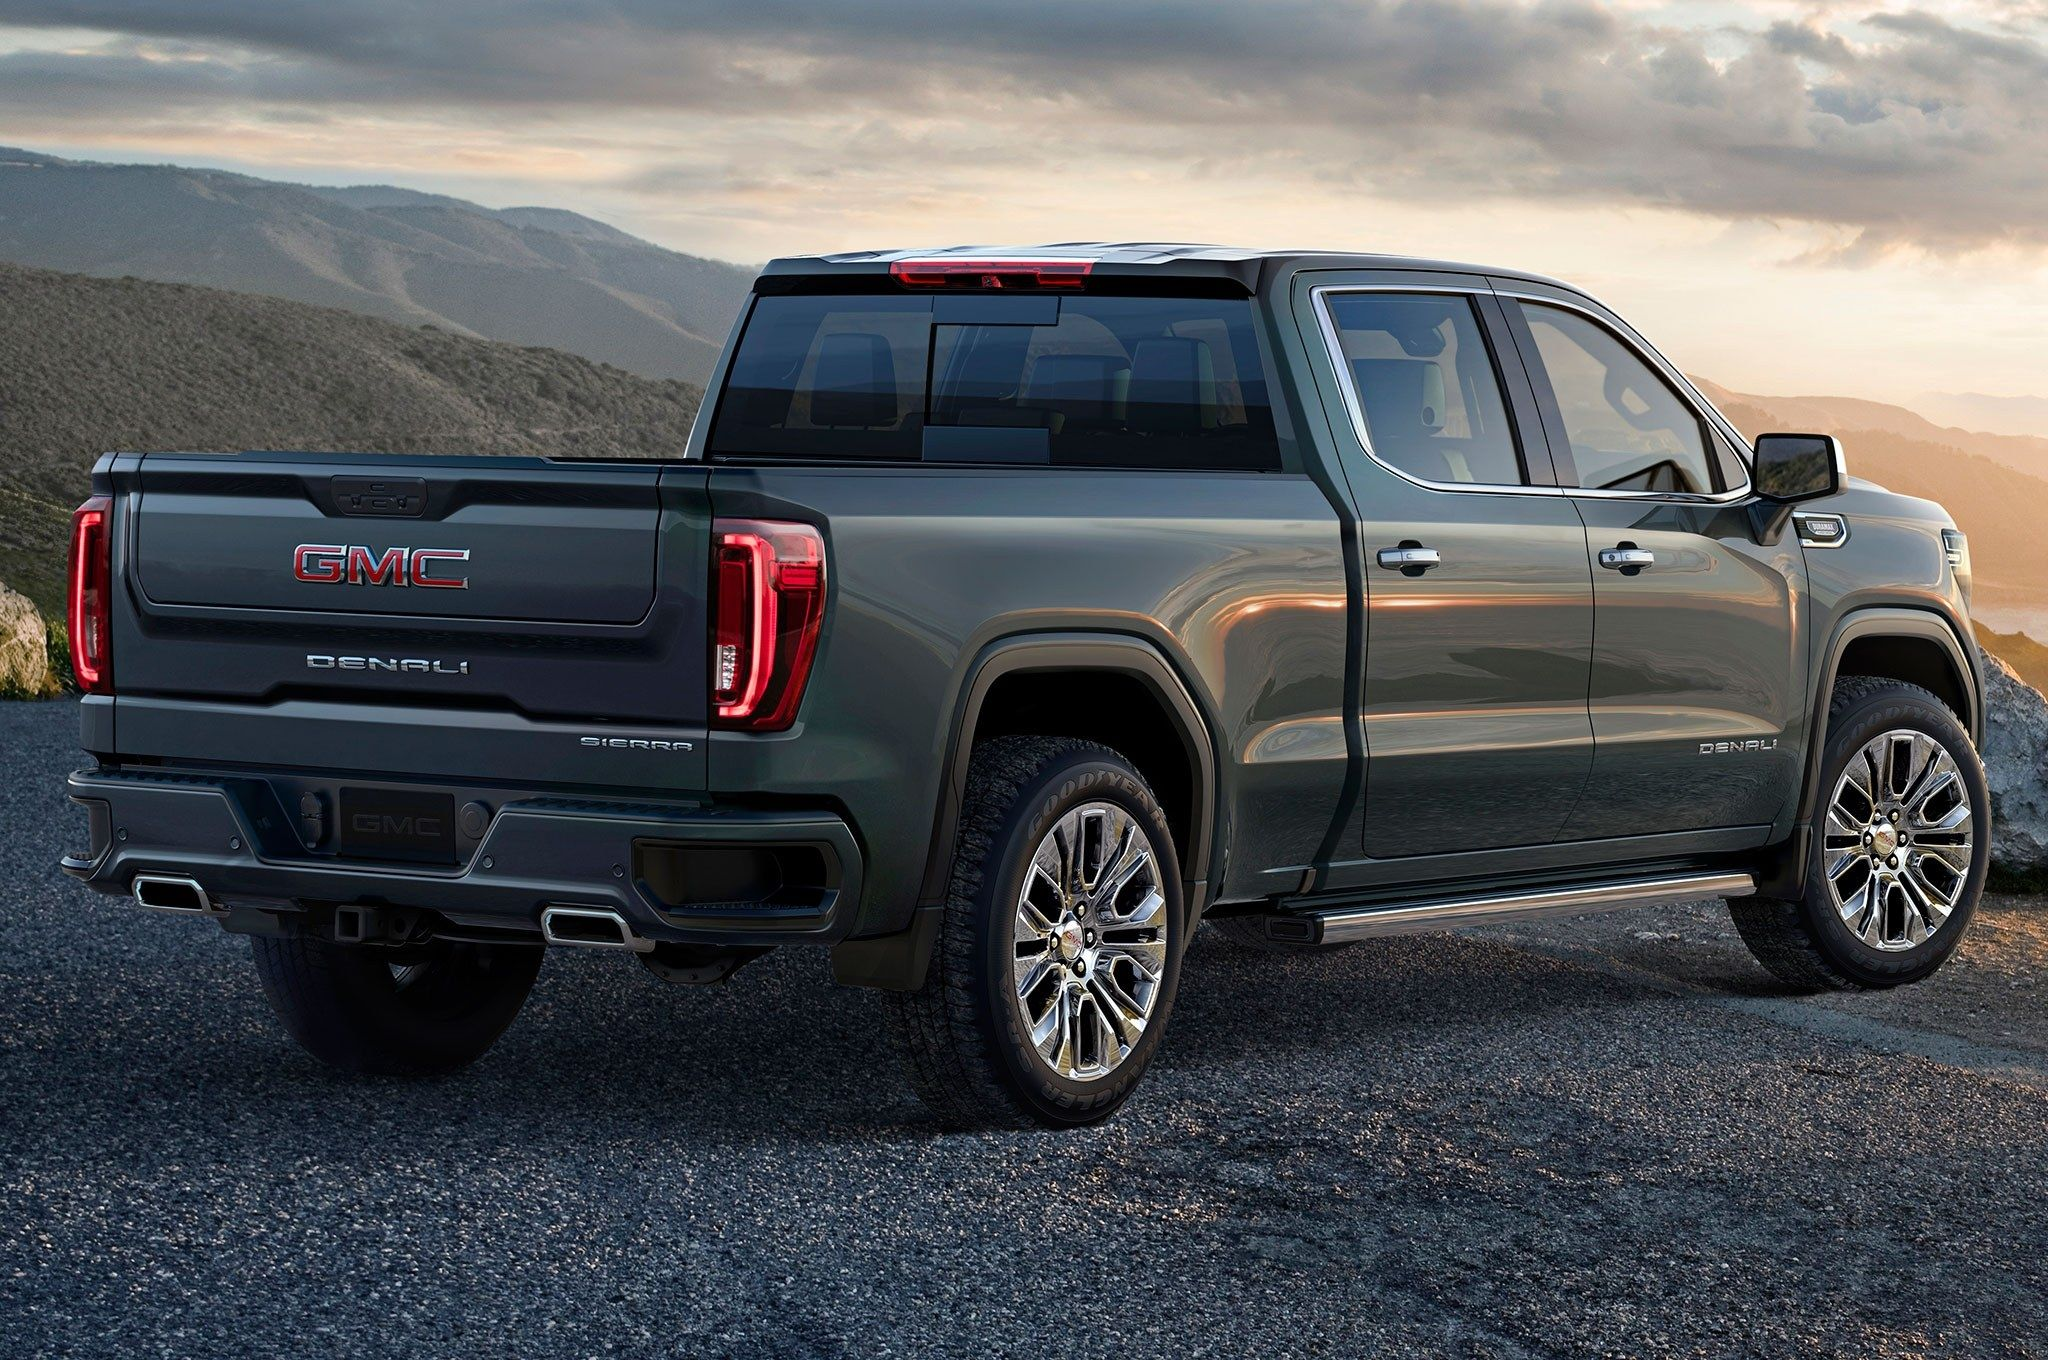 2019 Gmc Canyon Denali Release Specs And Review Gmc Sierra Denali Gmc Sierra Gmc Denali